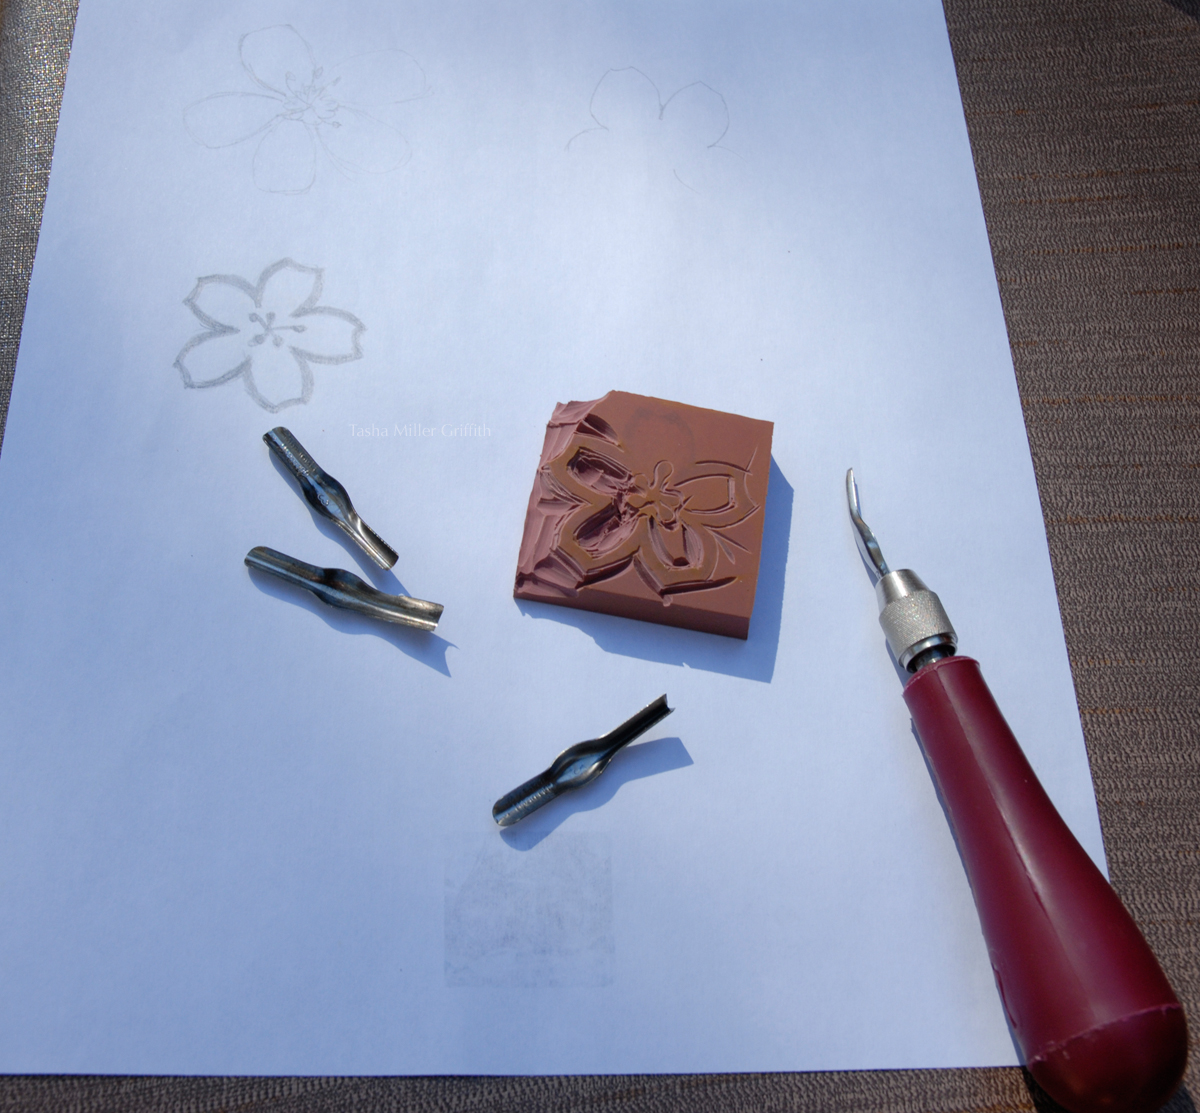 Carving a handmade rubber stamp stale bread into french